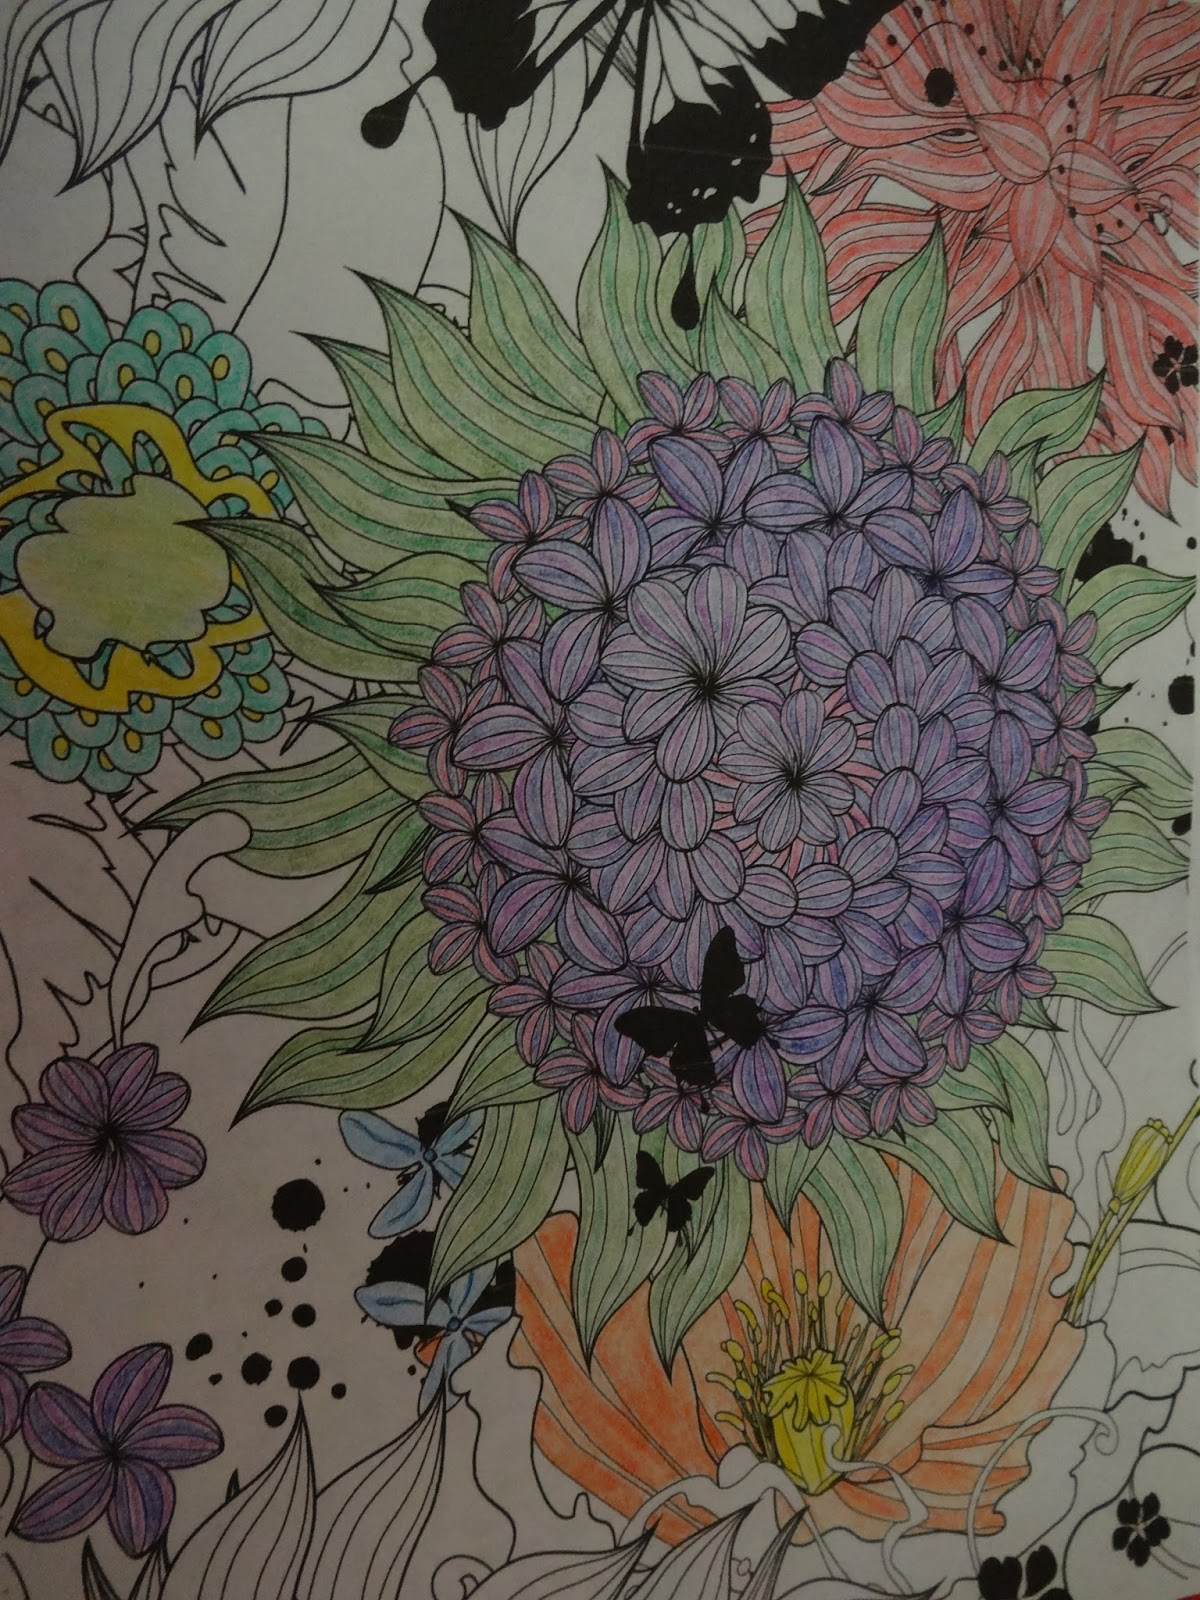 Color art floral wonders - I Decided On Colored Pencils Because I Find Them Flexible And Very Relaxing The First Day And Every Day Since I Have Spent At Least An Hour A Day